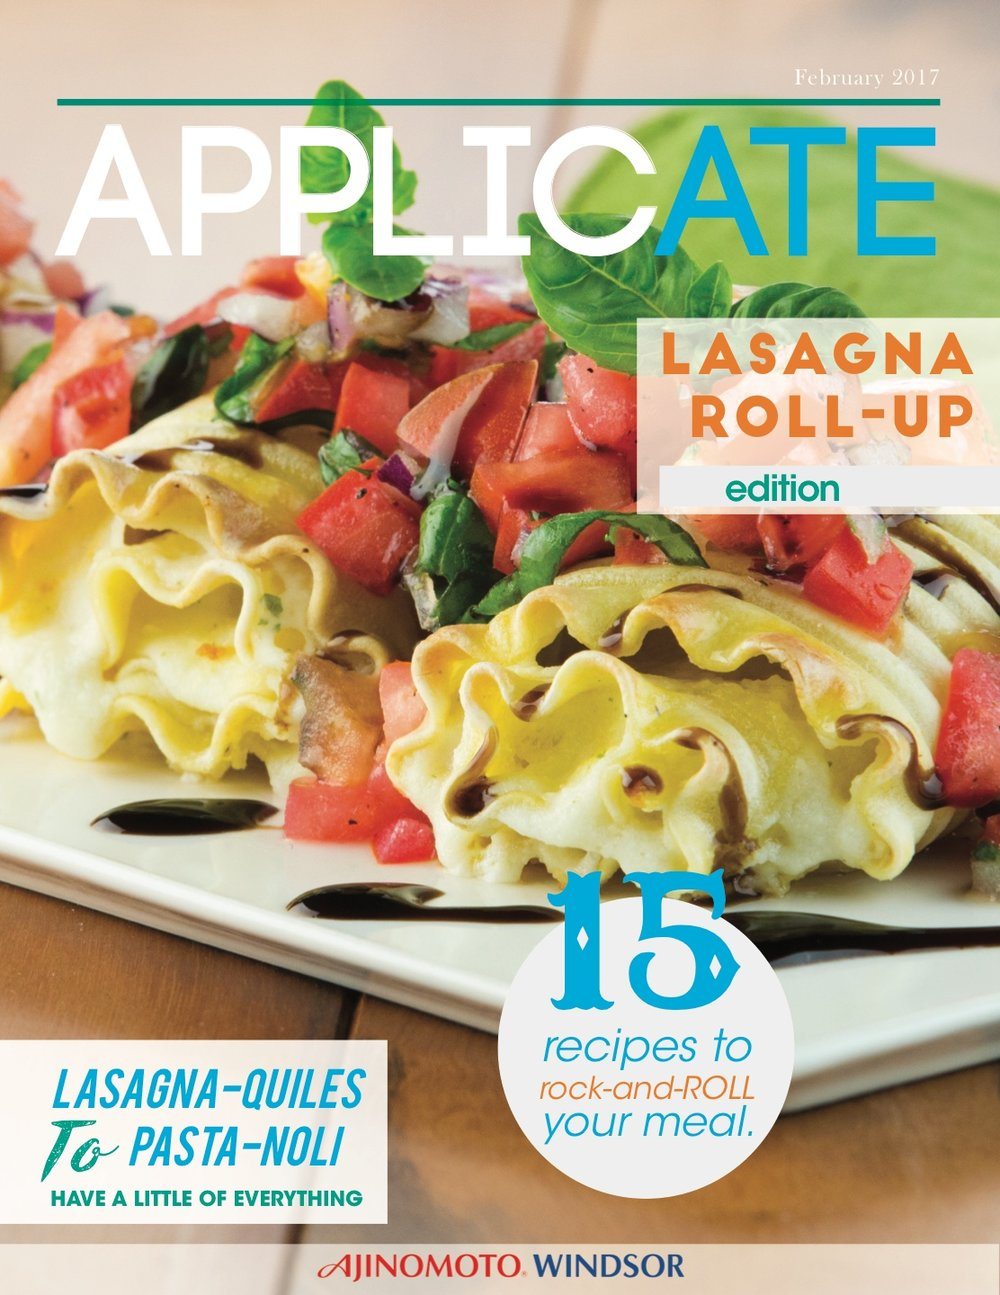 APPLICATE LASAGNA ROLLUP